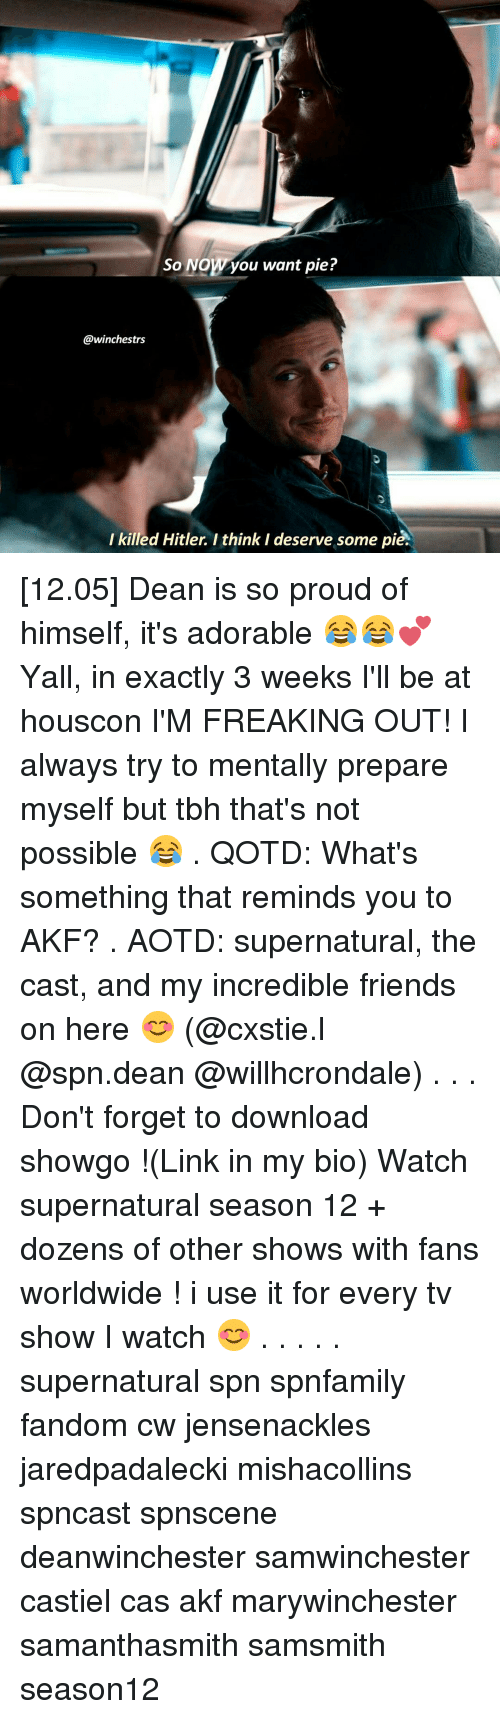 Memes, Tbh, and TV Shows: So NOW ou want pie?  @winchestrs  killed Hitler. I think I deserve some pi  l [12.05] Dean is so proud of himself, it's adorable 😂😂💕 Yall, in exactly 3 weeks I'll be at houscon I'M FREAKING OUT! I always try to mentally prepare myself but tbh that's not possible 😂 . QOTD: What's something that reminds you to AKF? . AOTD: supernatural, the cast, and my incredible friends on here 😊 (@cxstie.l @spn.dean @willhcrondale) . . . Don't forget to download showgo !(Link in my bio) Watch supernatural season 12 + dozens of other shows with fans worldwide !♡♡ i use it for every tv show I watch 😊 . . . . . supernatural spn spnfamily fandom cw jensenackles jaredpadalecki mishacollins spncast spnscene deanwinchester samwinchester castiel cas akf marywinchester samanthasmith samsmith season12